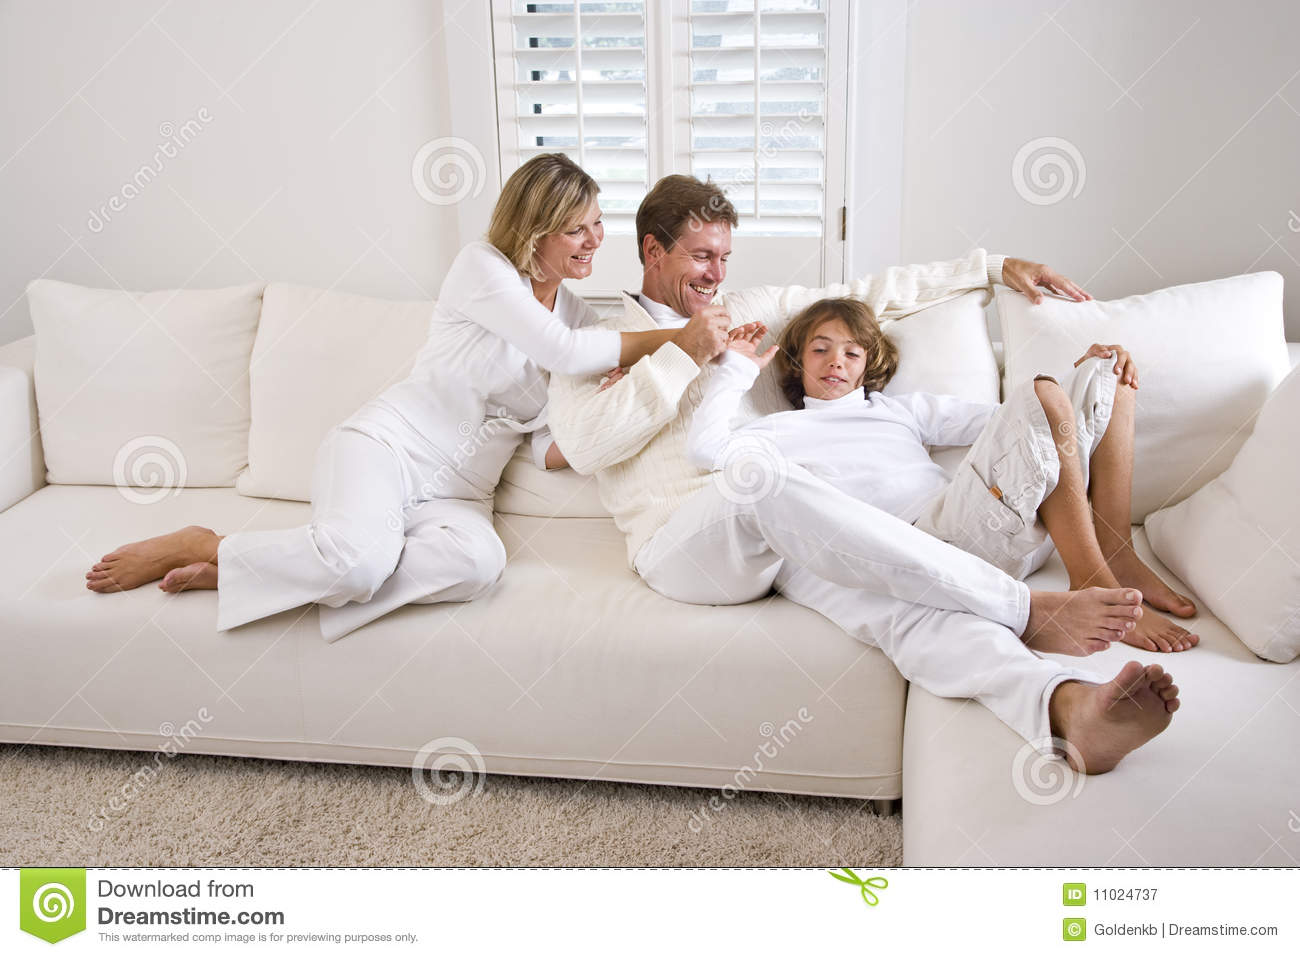 family relaxing at home on white living room sofa stock. Black Bedroom Furniture Sets. Home Design Ideas